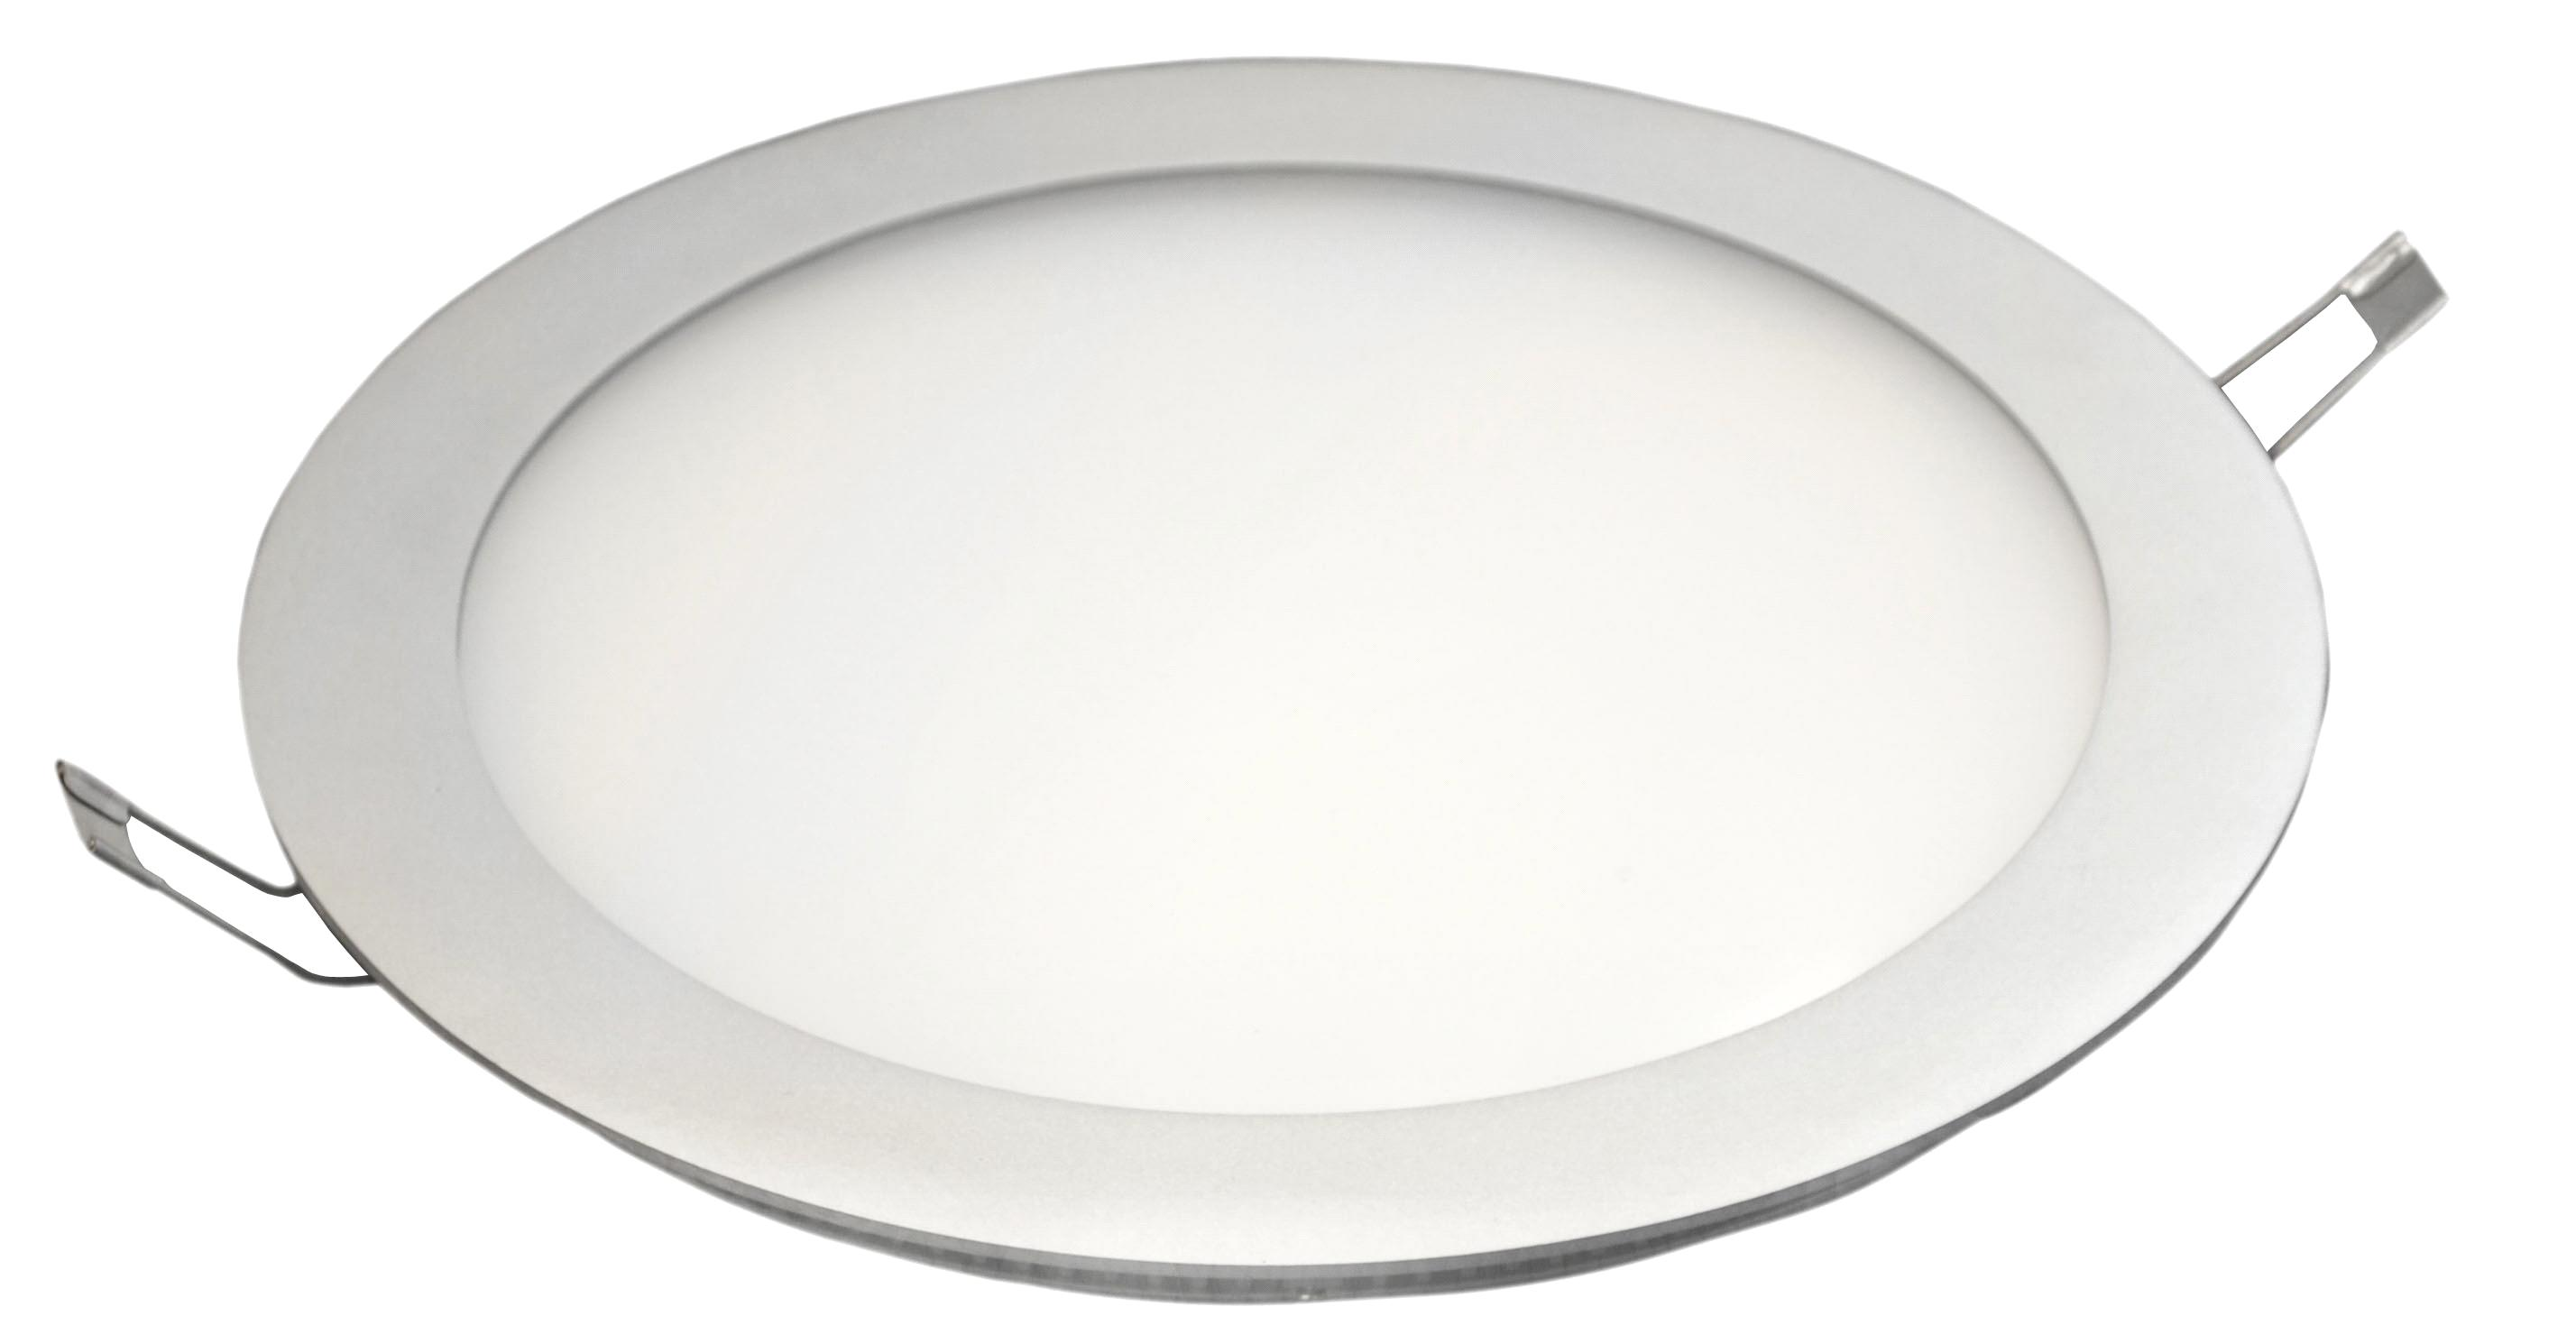 Led Panel Light Square And Round Led Panel Light Round Purchasing Souring Agent Ecvv